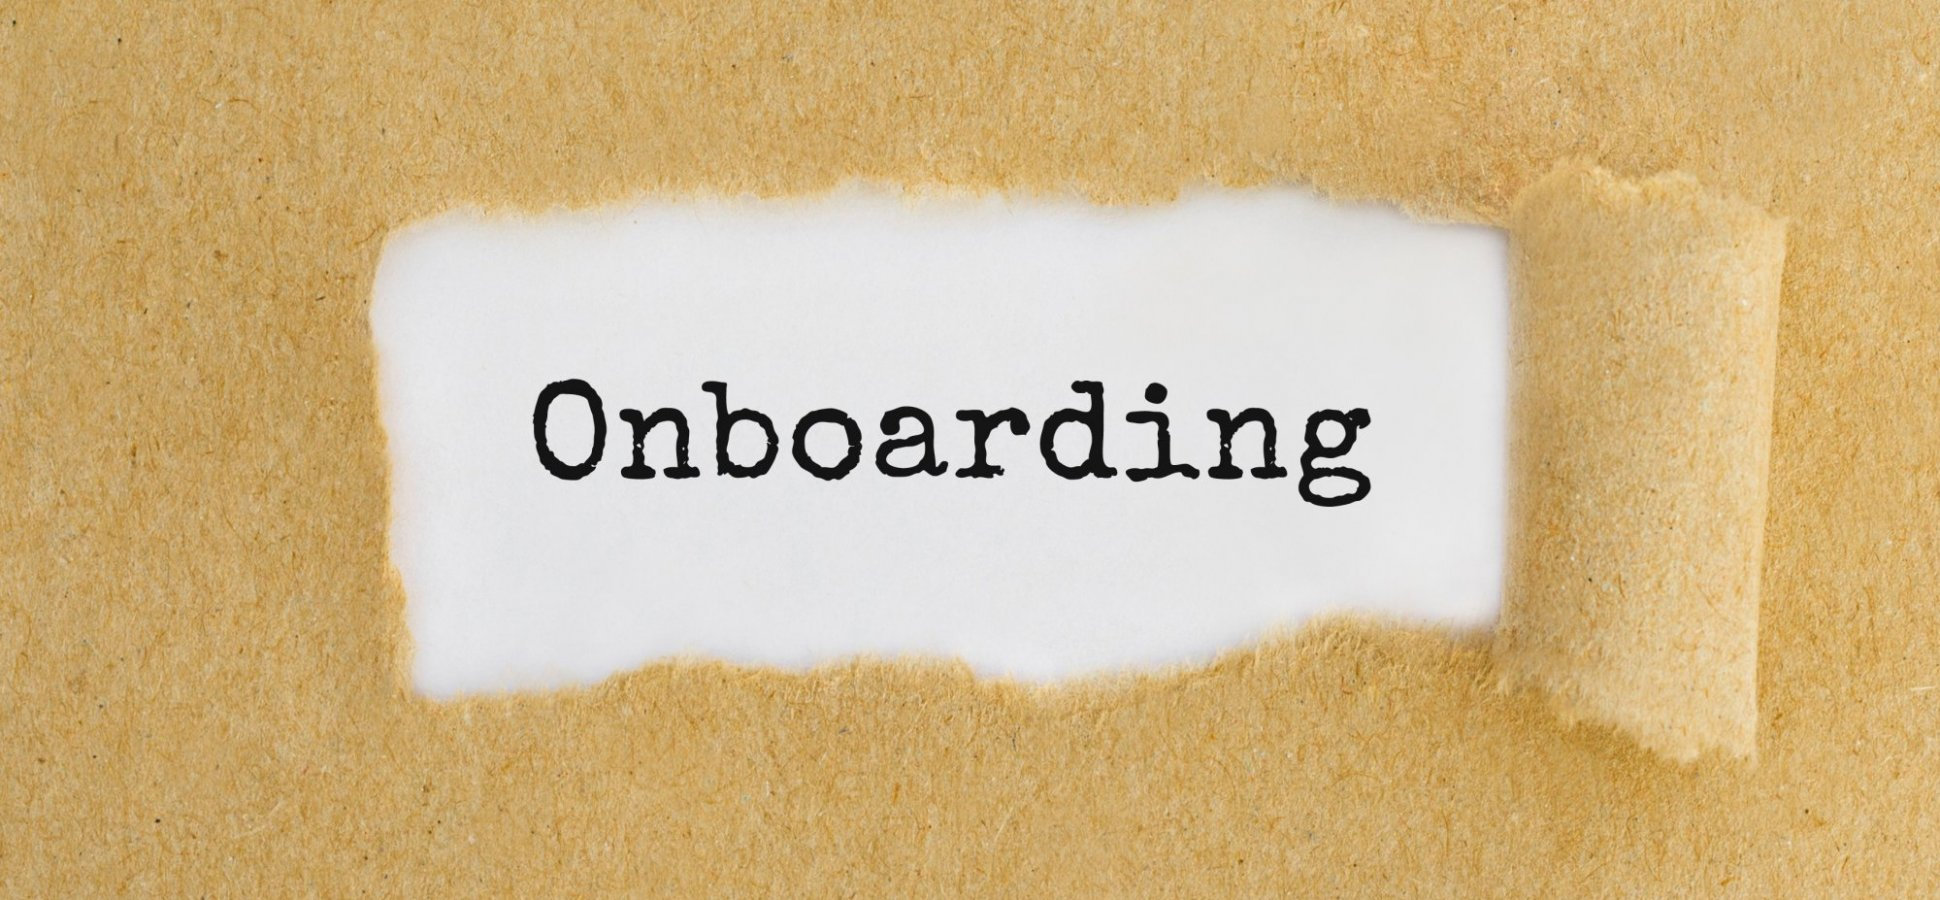 Every New Employee Onboarding Program Should Have These Two Pieces (If You Want Highly Productive New Employees Fast)